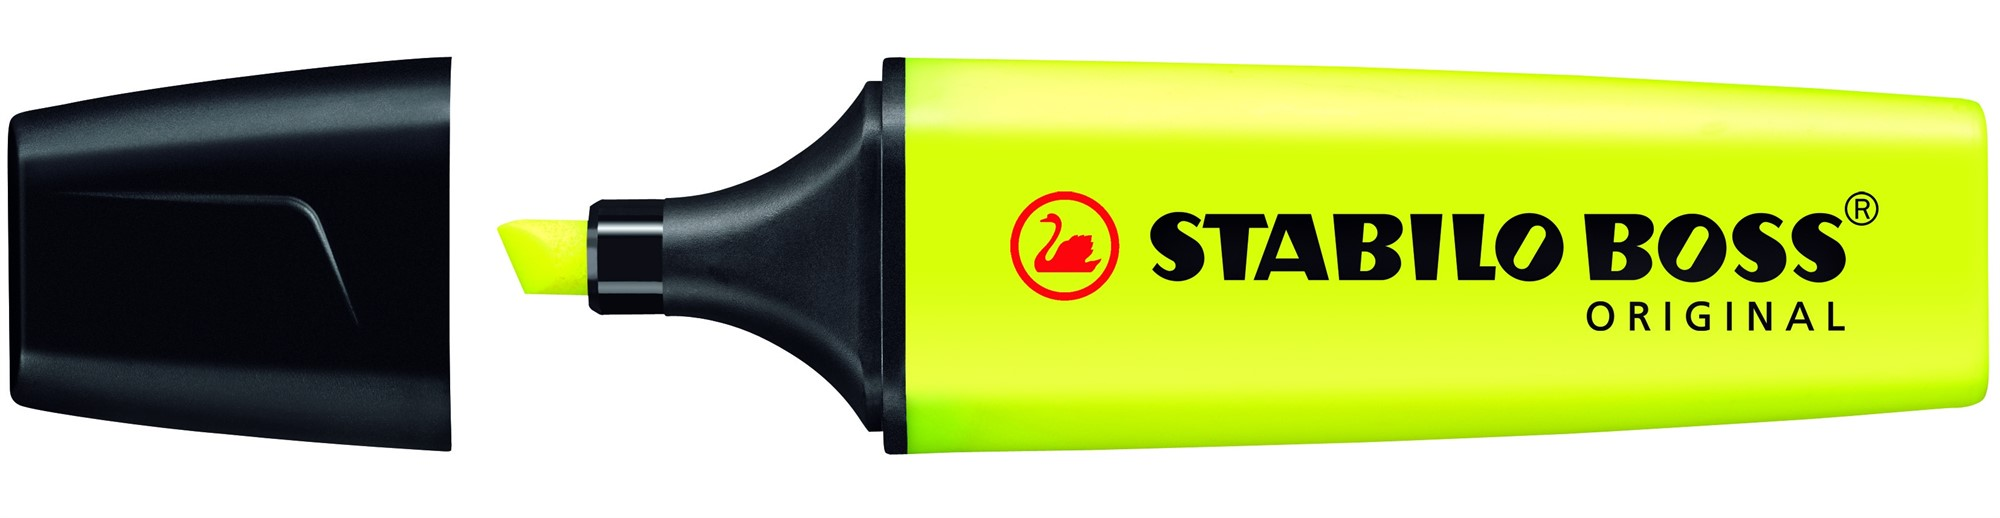 STABILO 70/24 BOSS ORIGINAL YELLOW 10PC(S) MARKER